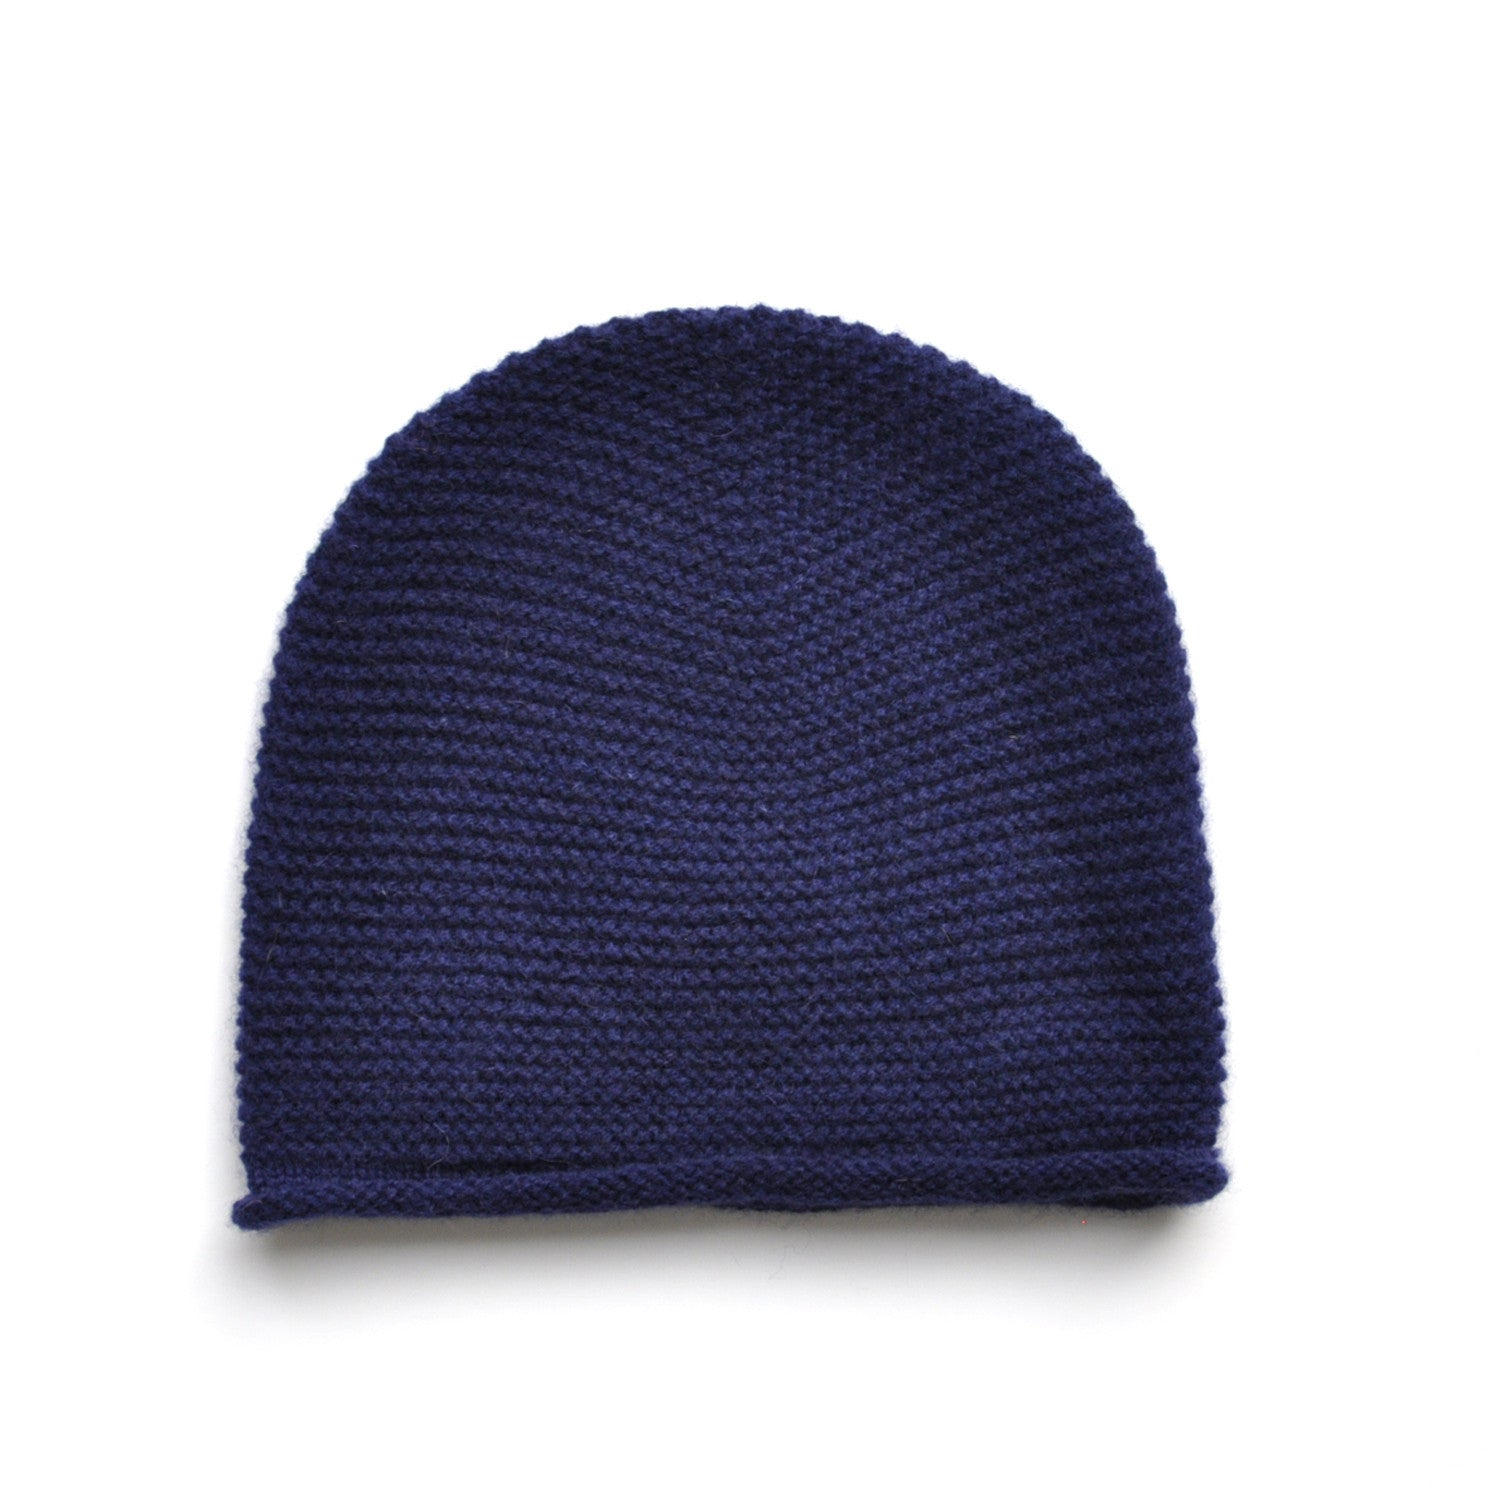 bafcb76f98d98 Knitted Beanie - 100% Cashmere - Navy Childrens Hat JAM London